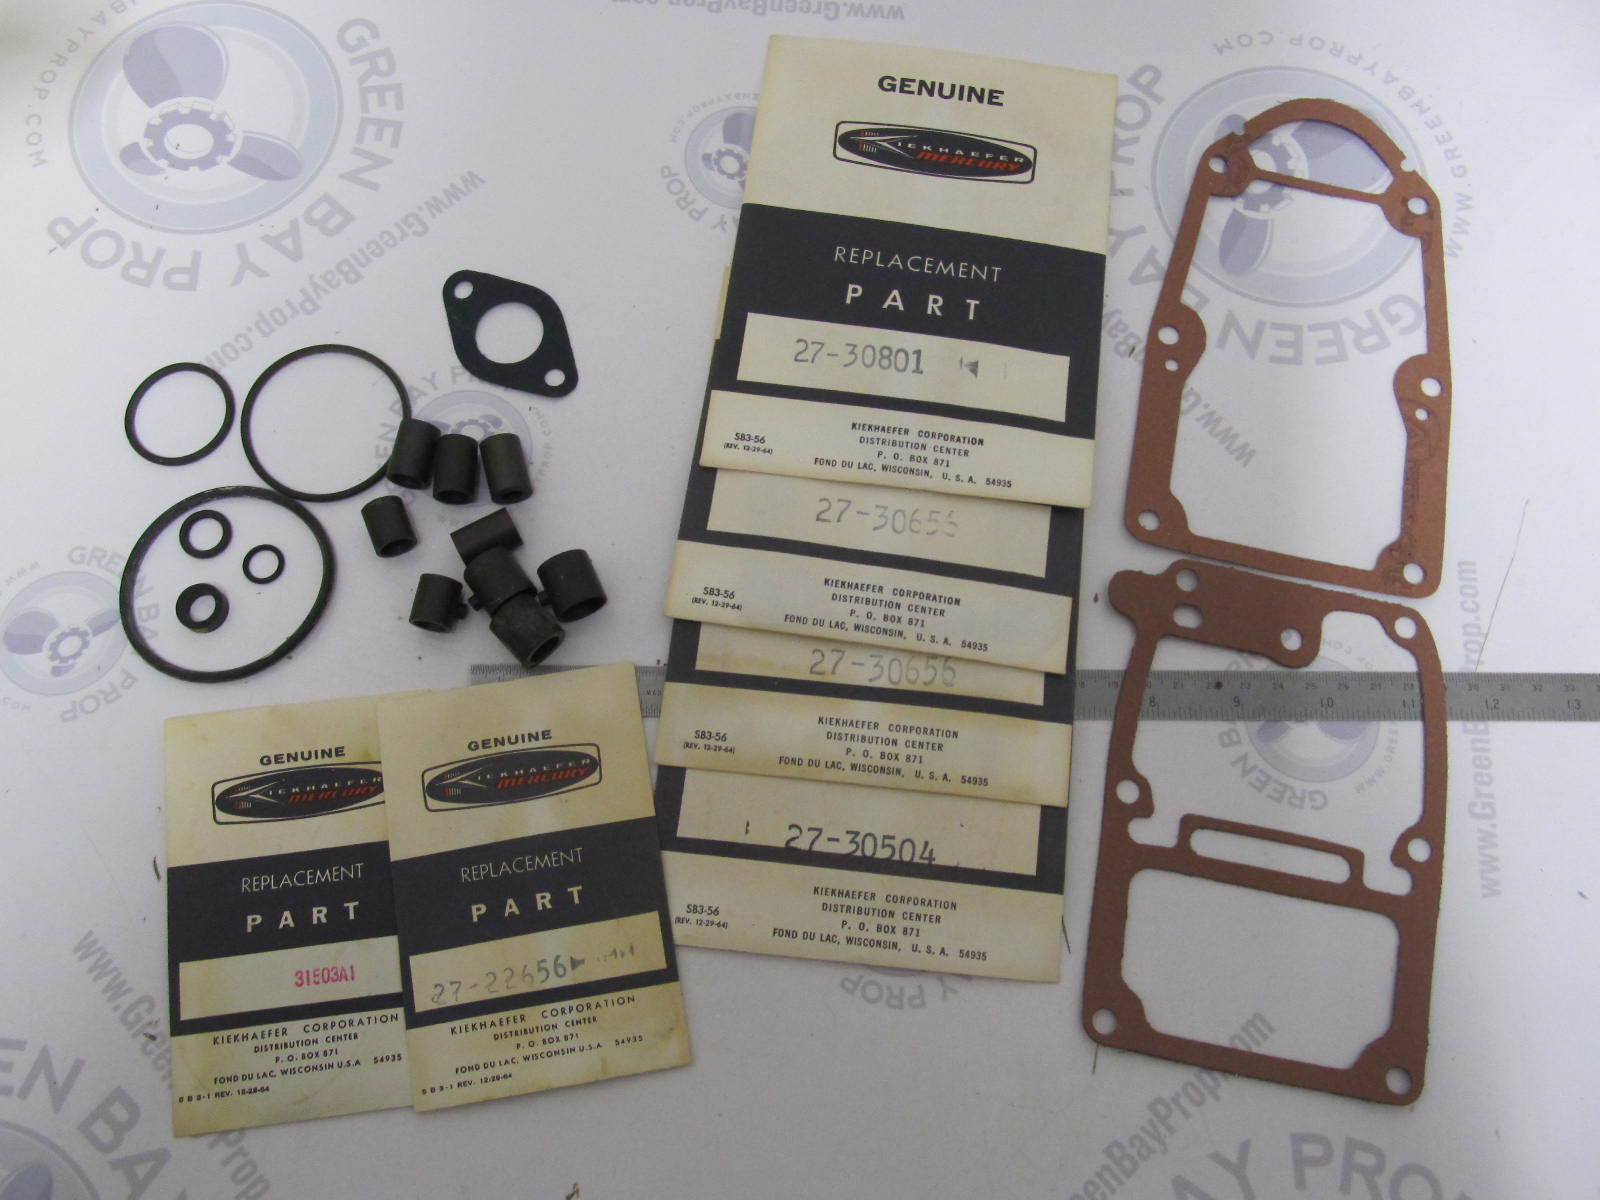 27-32215A1 Mercury 60 Outboard Motor Overhaul Gasket Set NLA